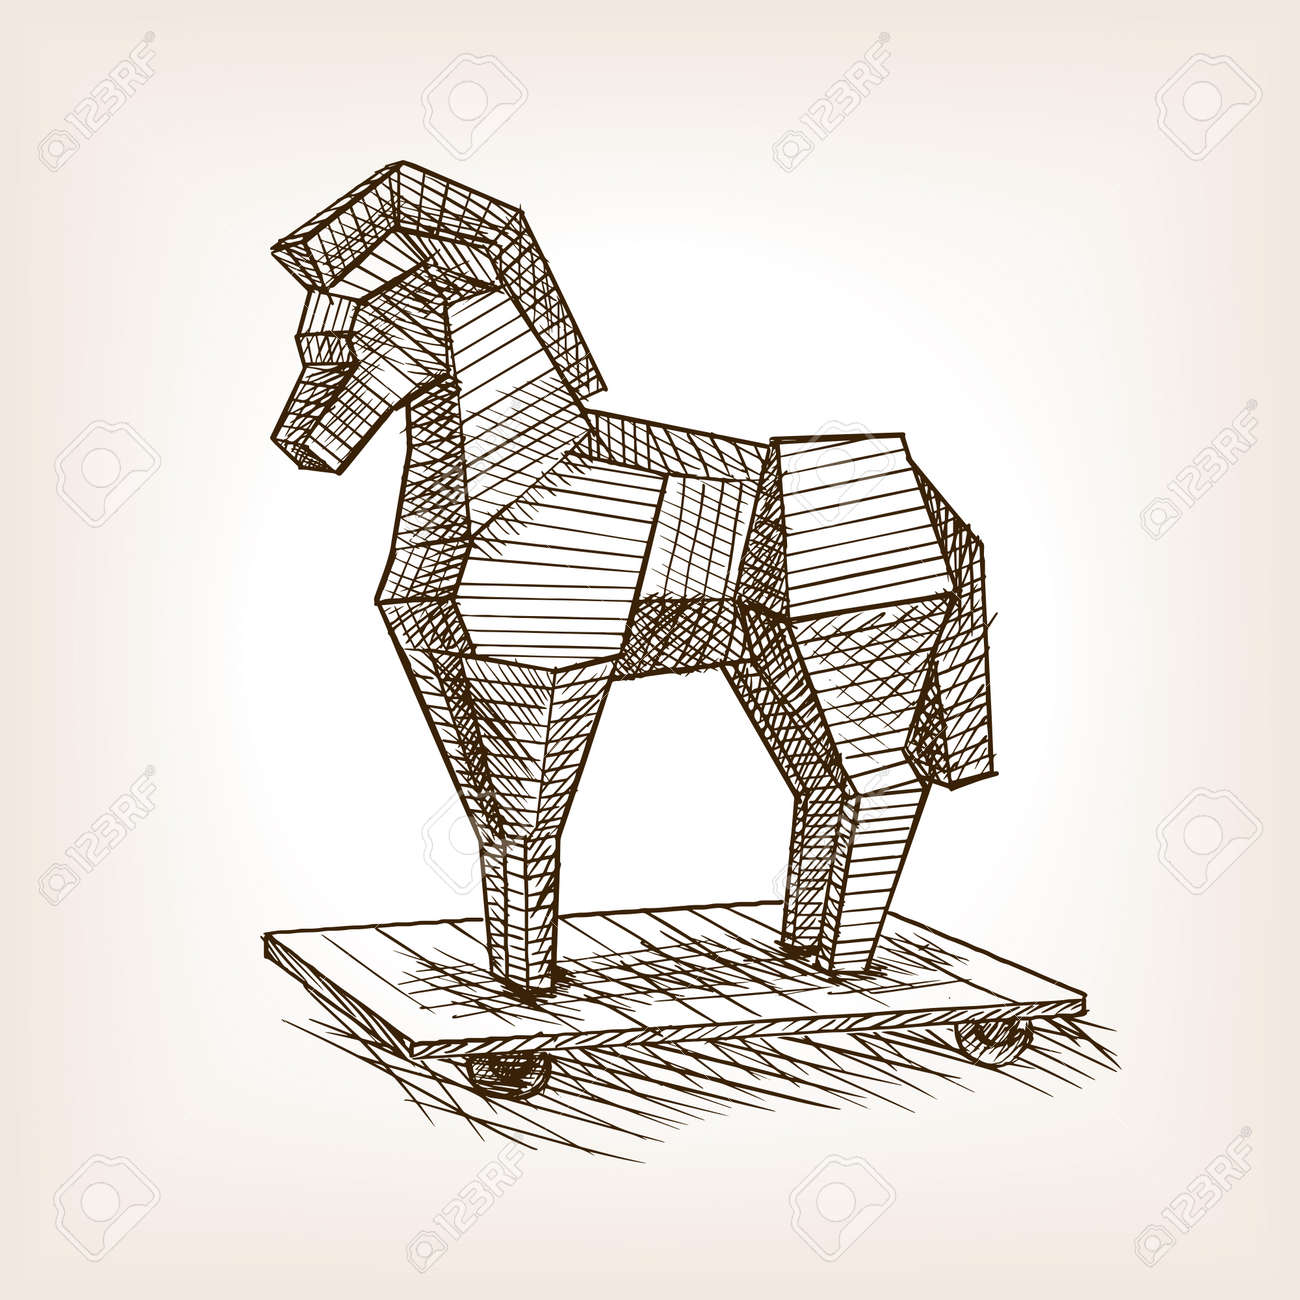 Trojan Horse Sketch Style Vector Illustration Historical Object Royalty Free Cliparts Vectors And Stock Illustration Image 62977529